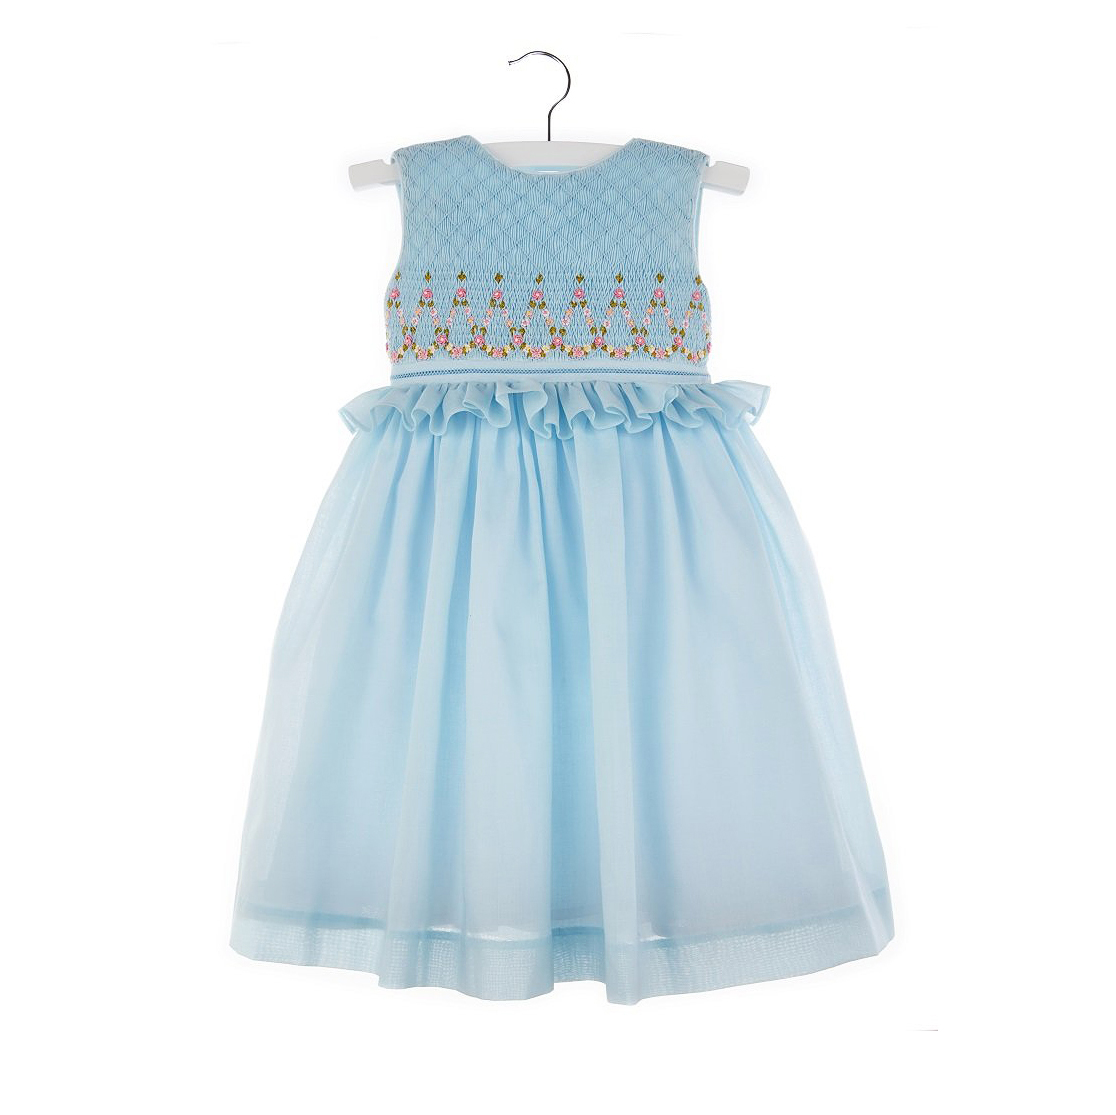 summer flower girl outfit blue frilly dress